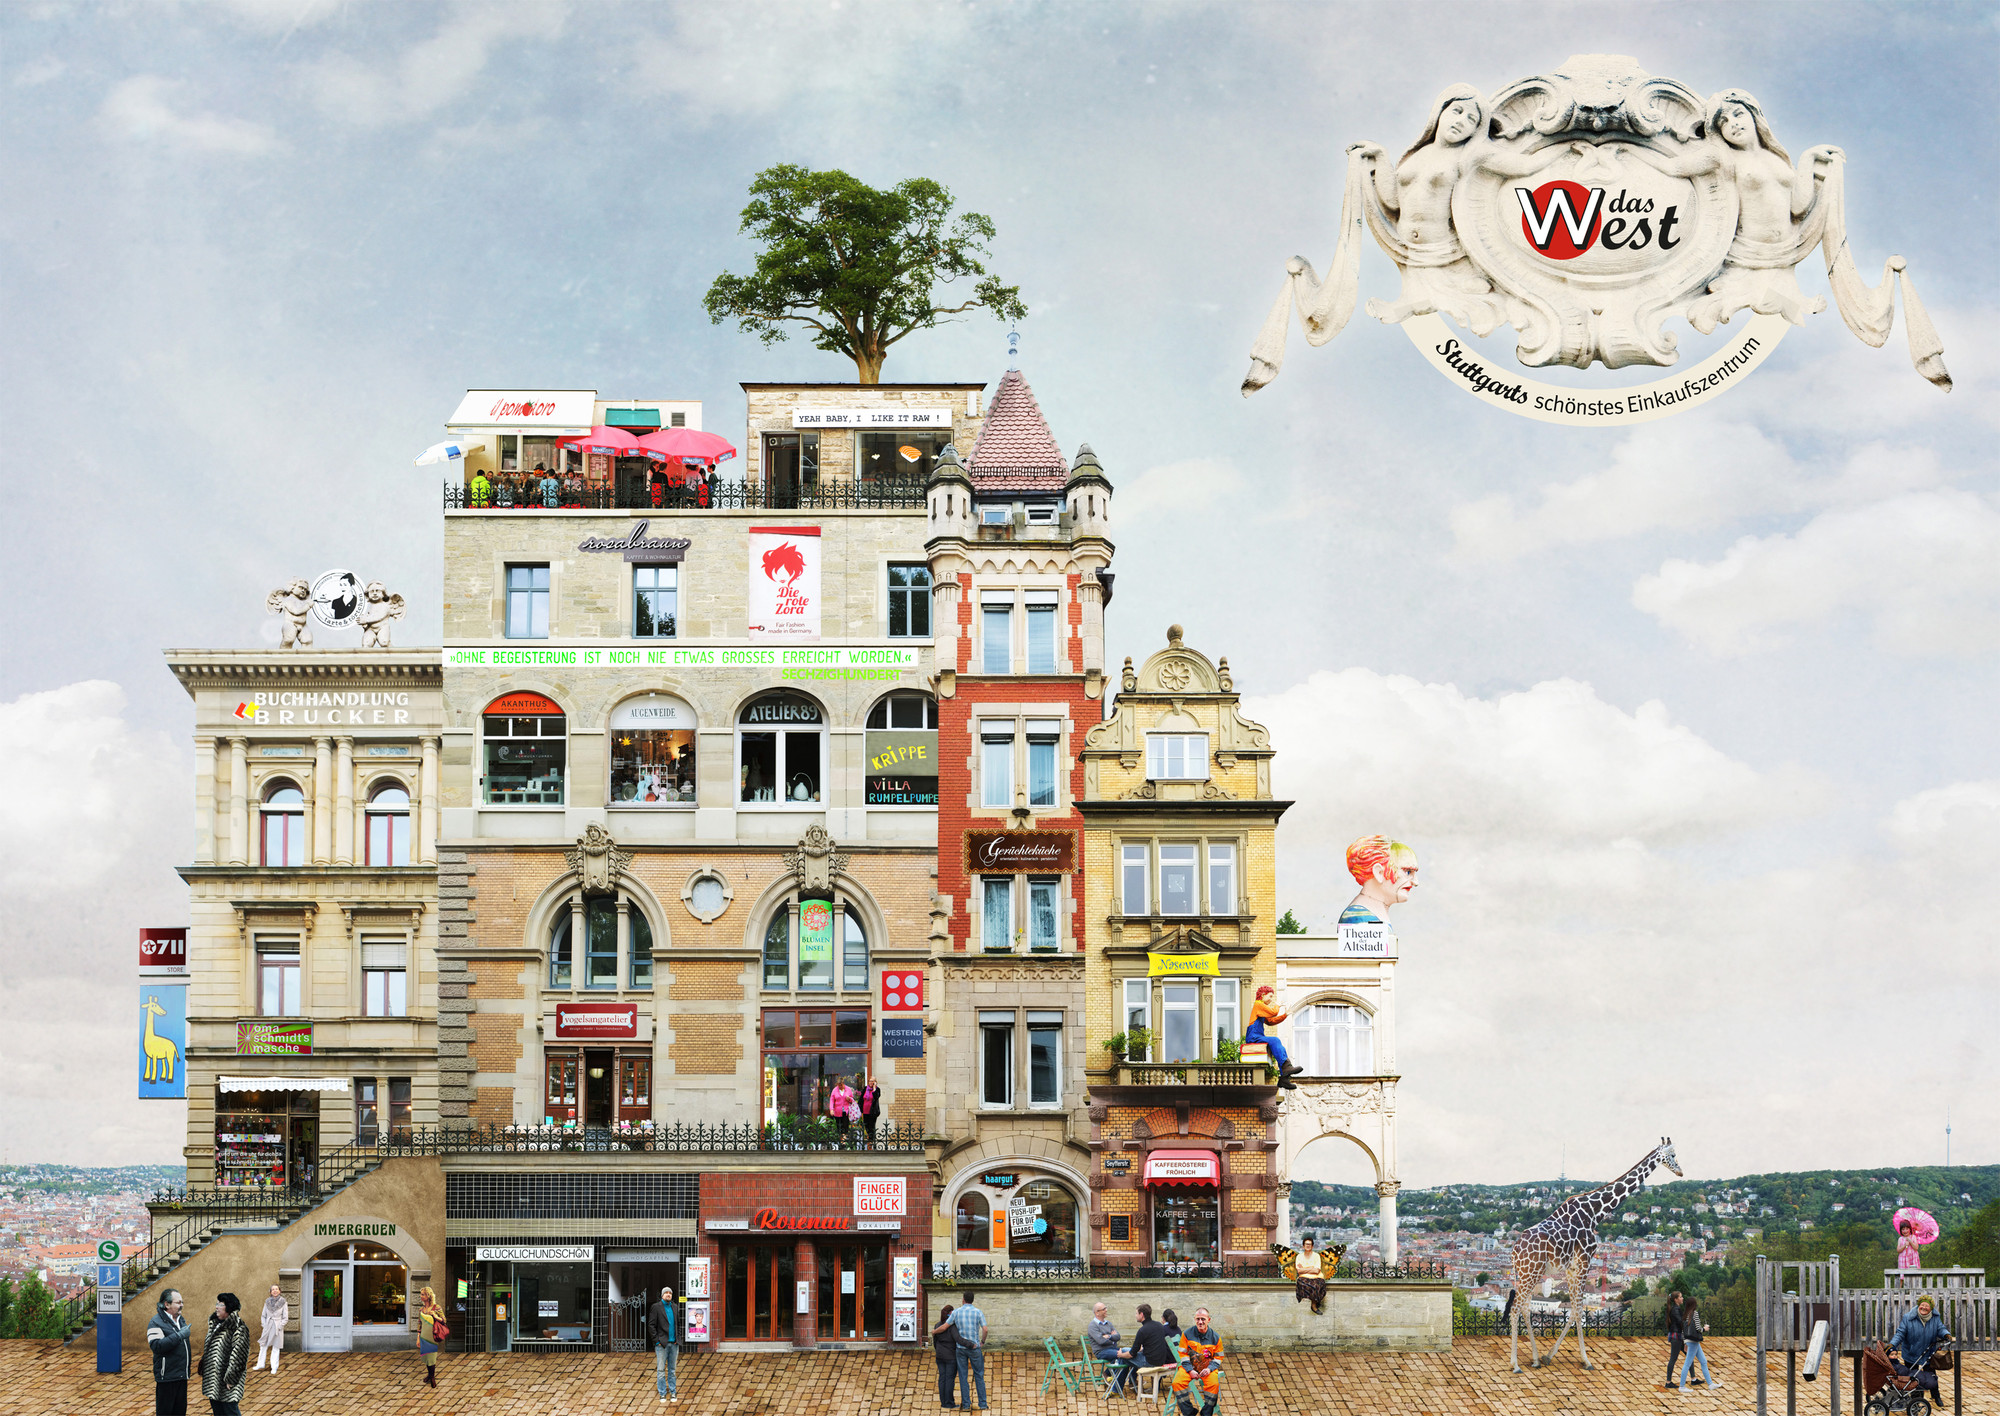 The West (a virtual shopping centre composed of buildings from Stuttgart). Imagen © Matthias Jung